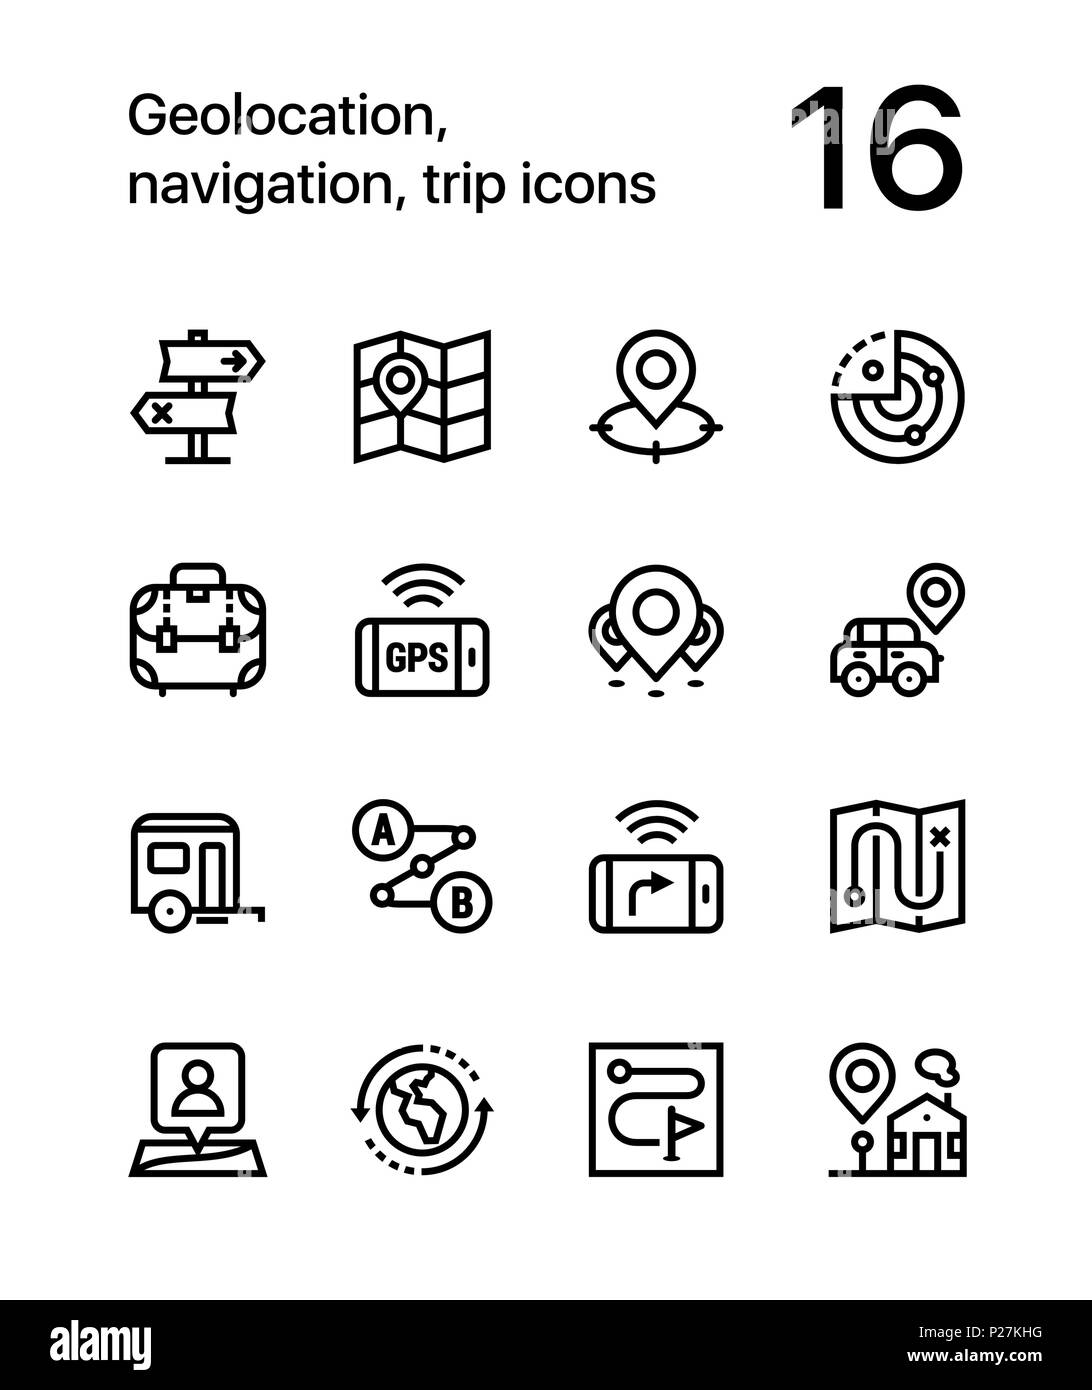 Geolocation, navigation, trip icons for web and mobile design pack 2 - Stock Image